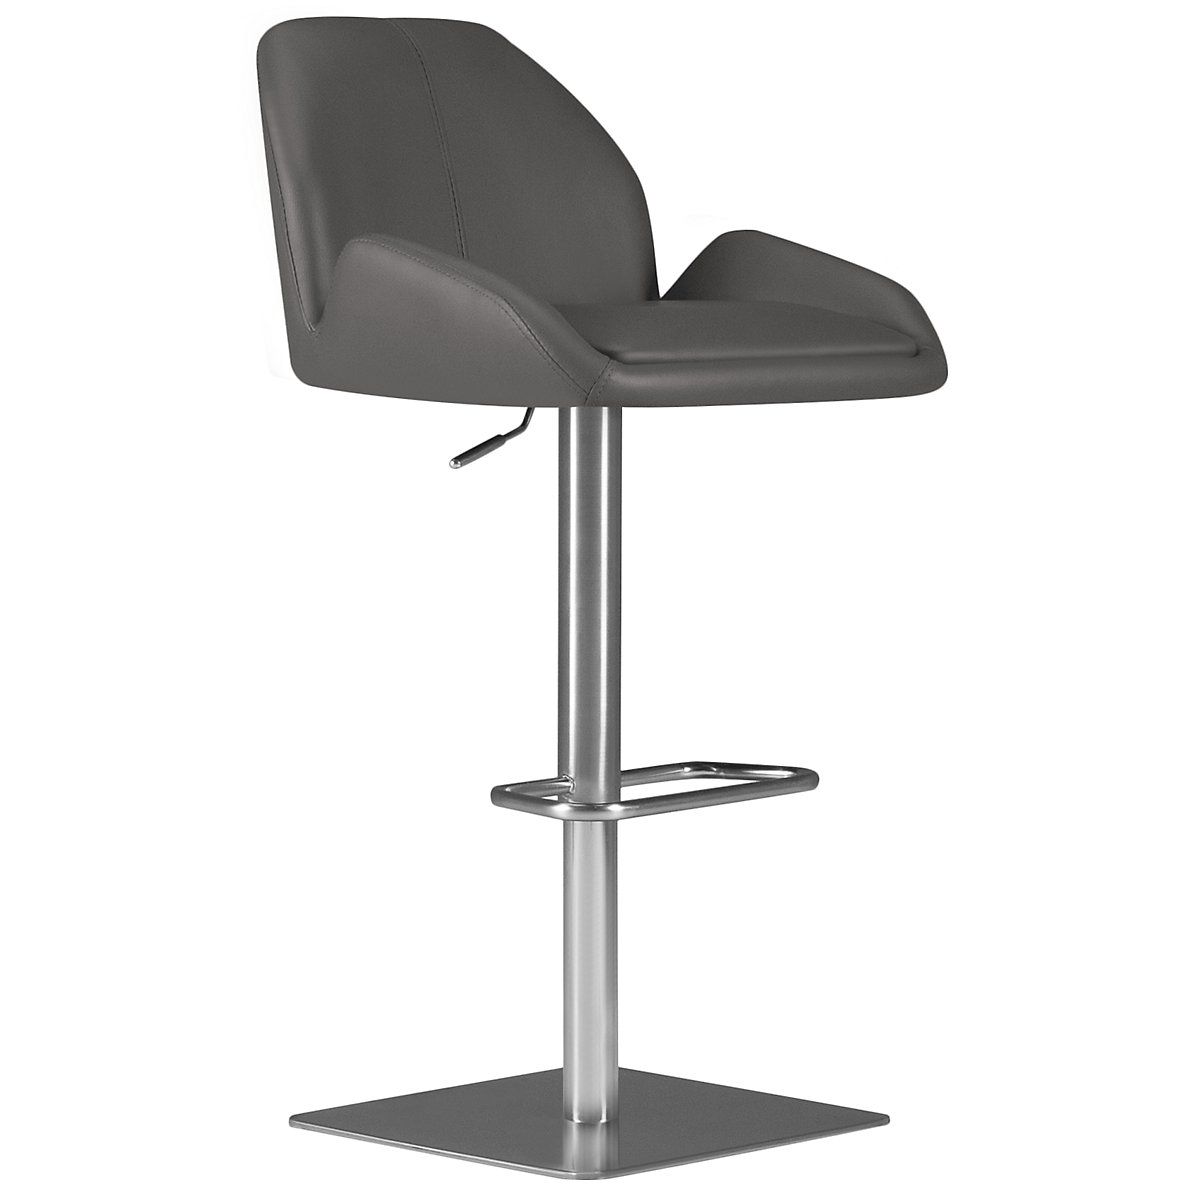 Fairfax Gray Upholstered Uph Adjustable Stool